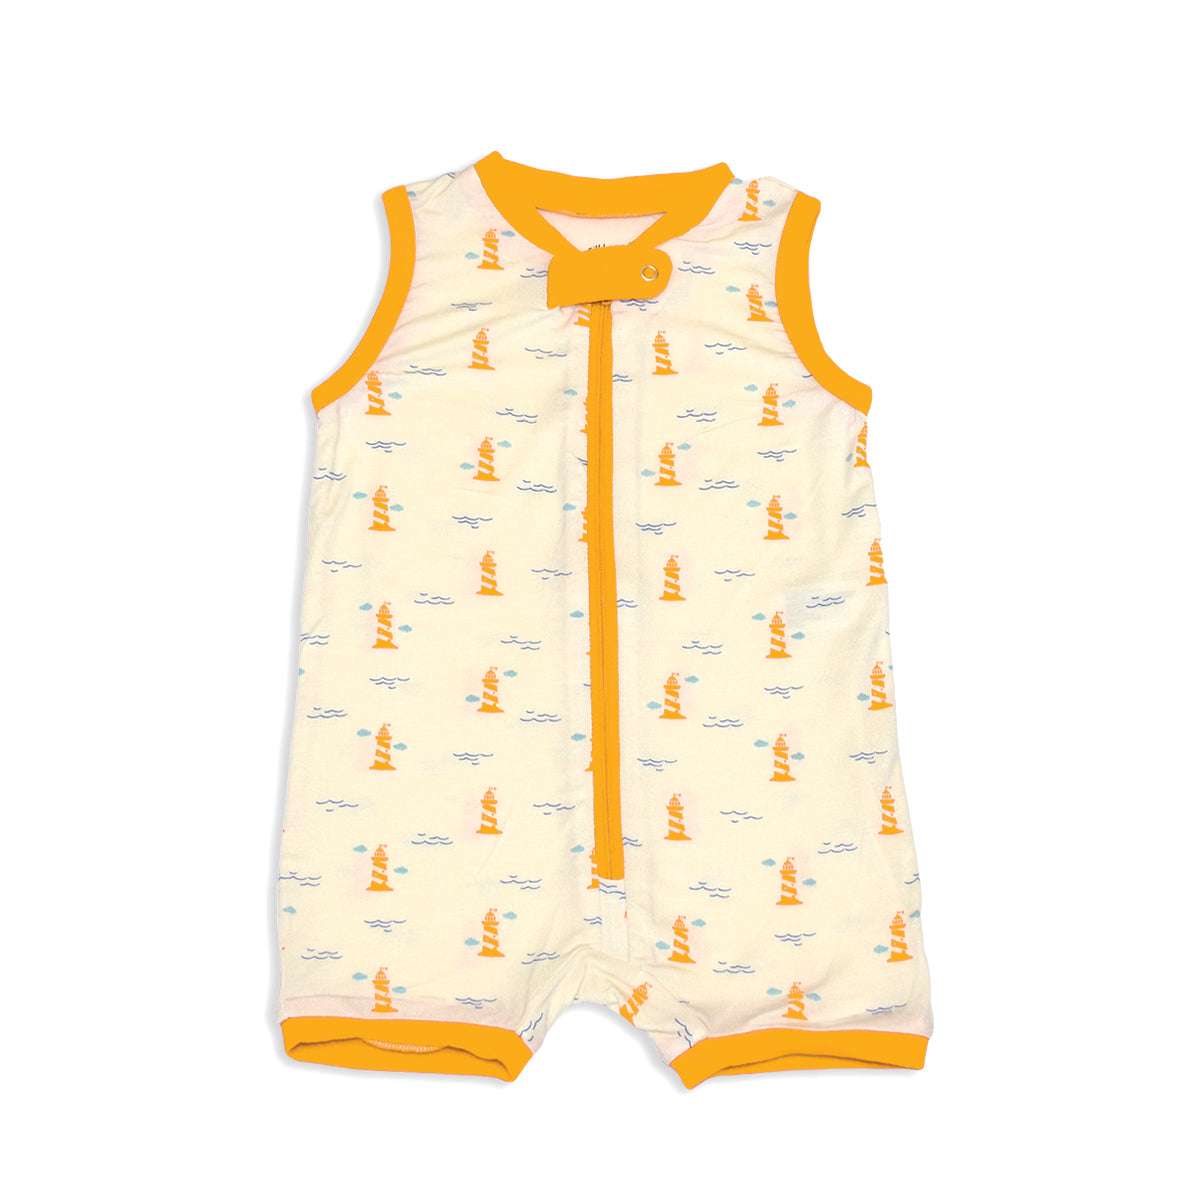 Bamboo Sleeveless Romper with Zipper (Lighthouse Print)